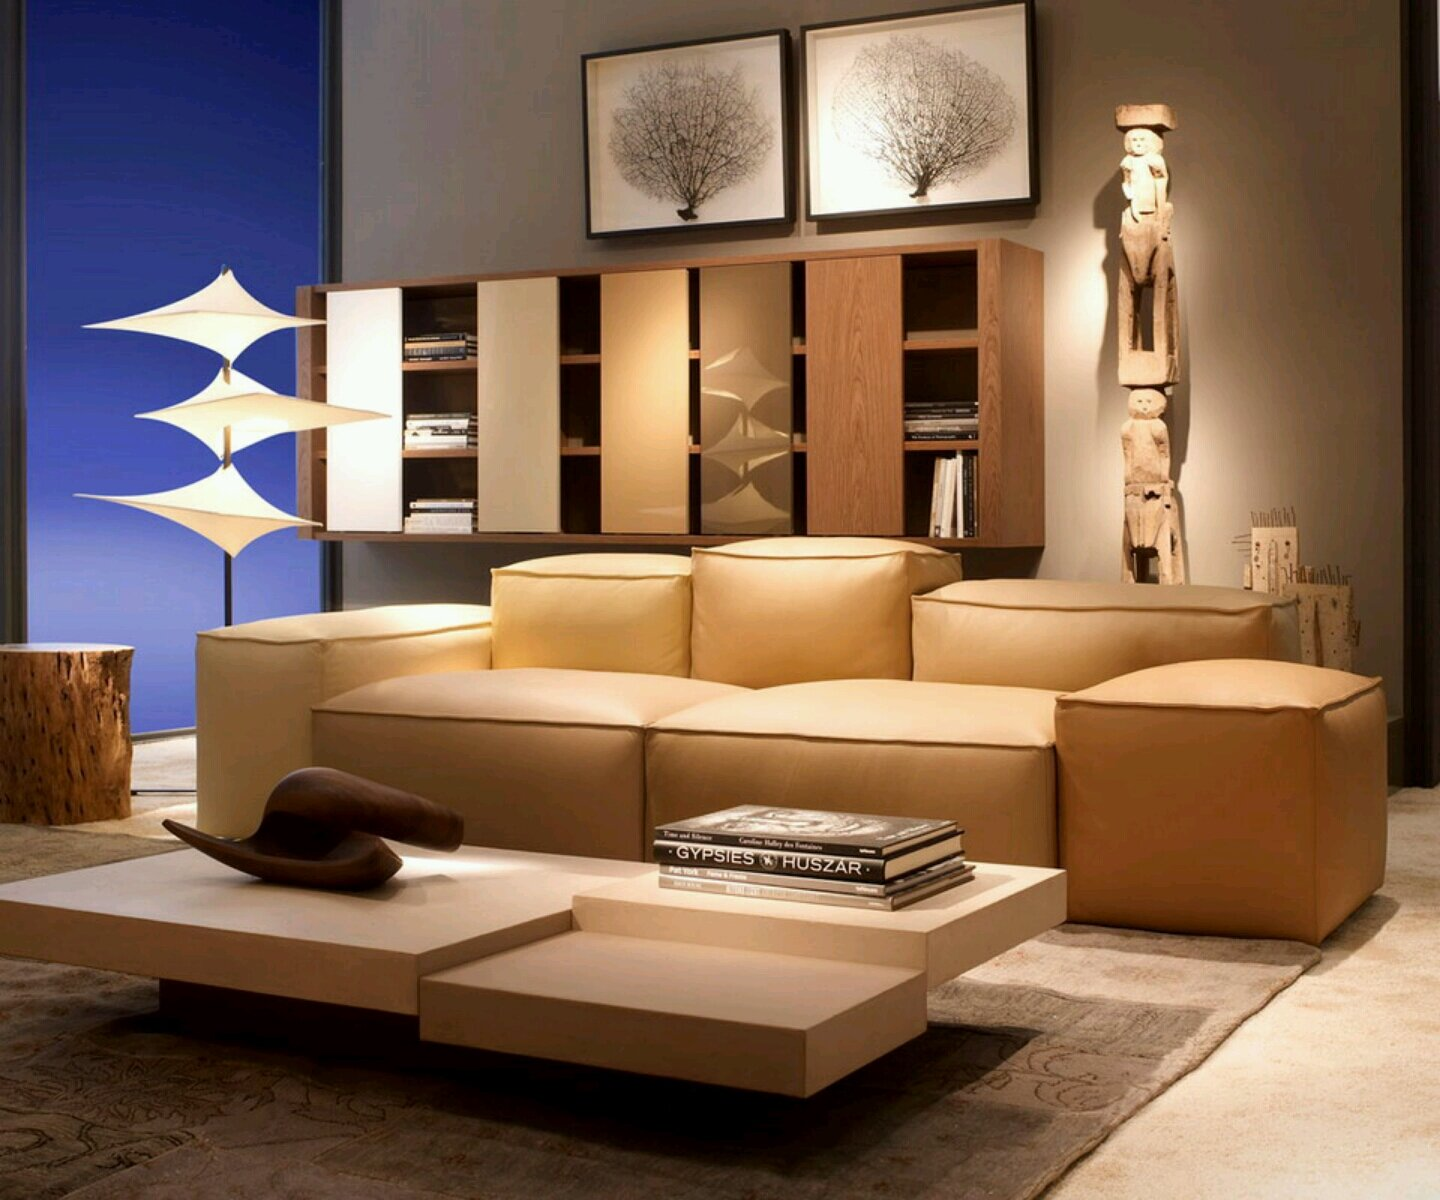 15 really beautiful sofa designs and ideas for Top furniture designers in the world